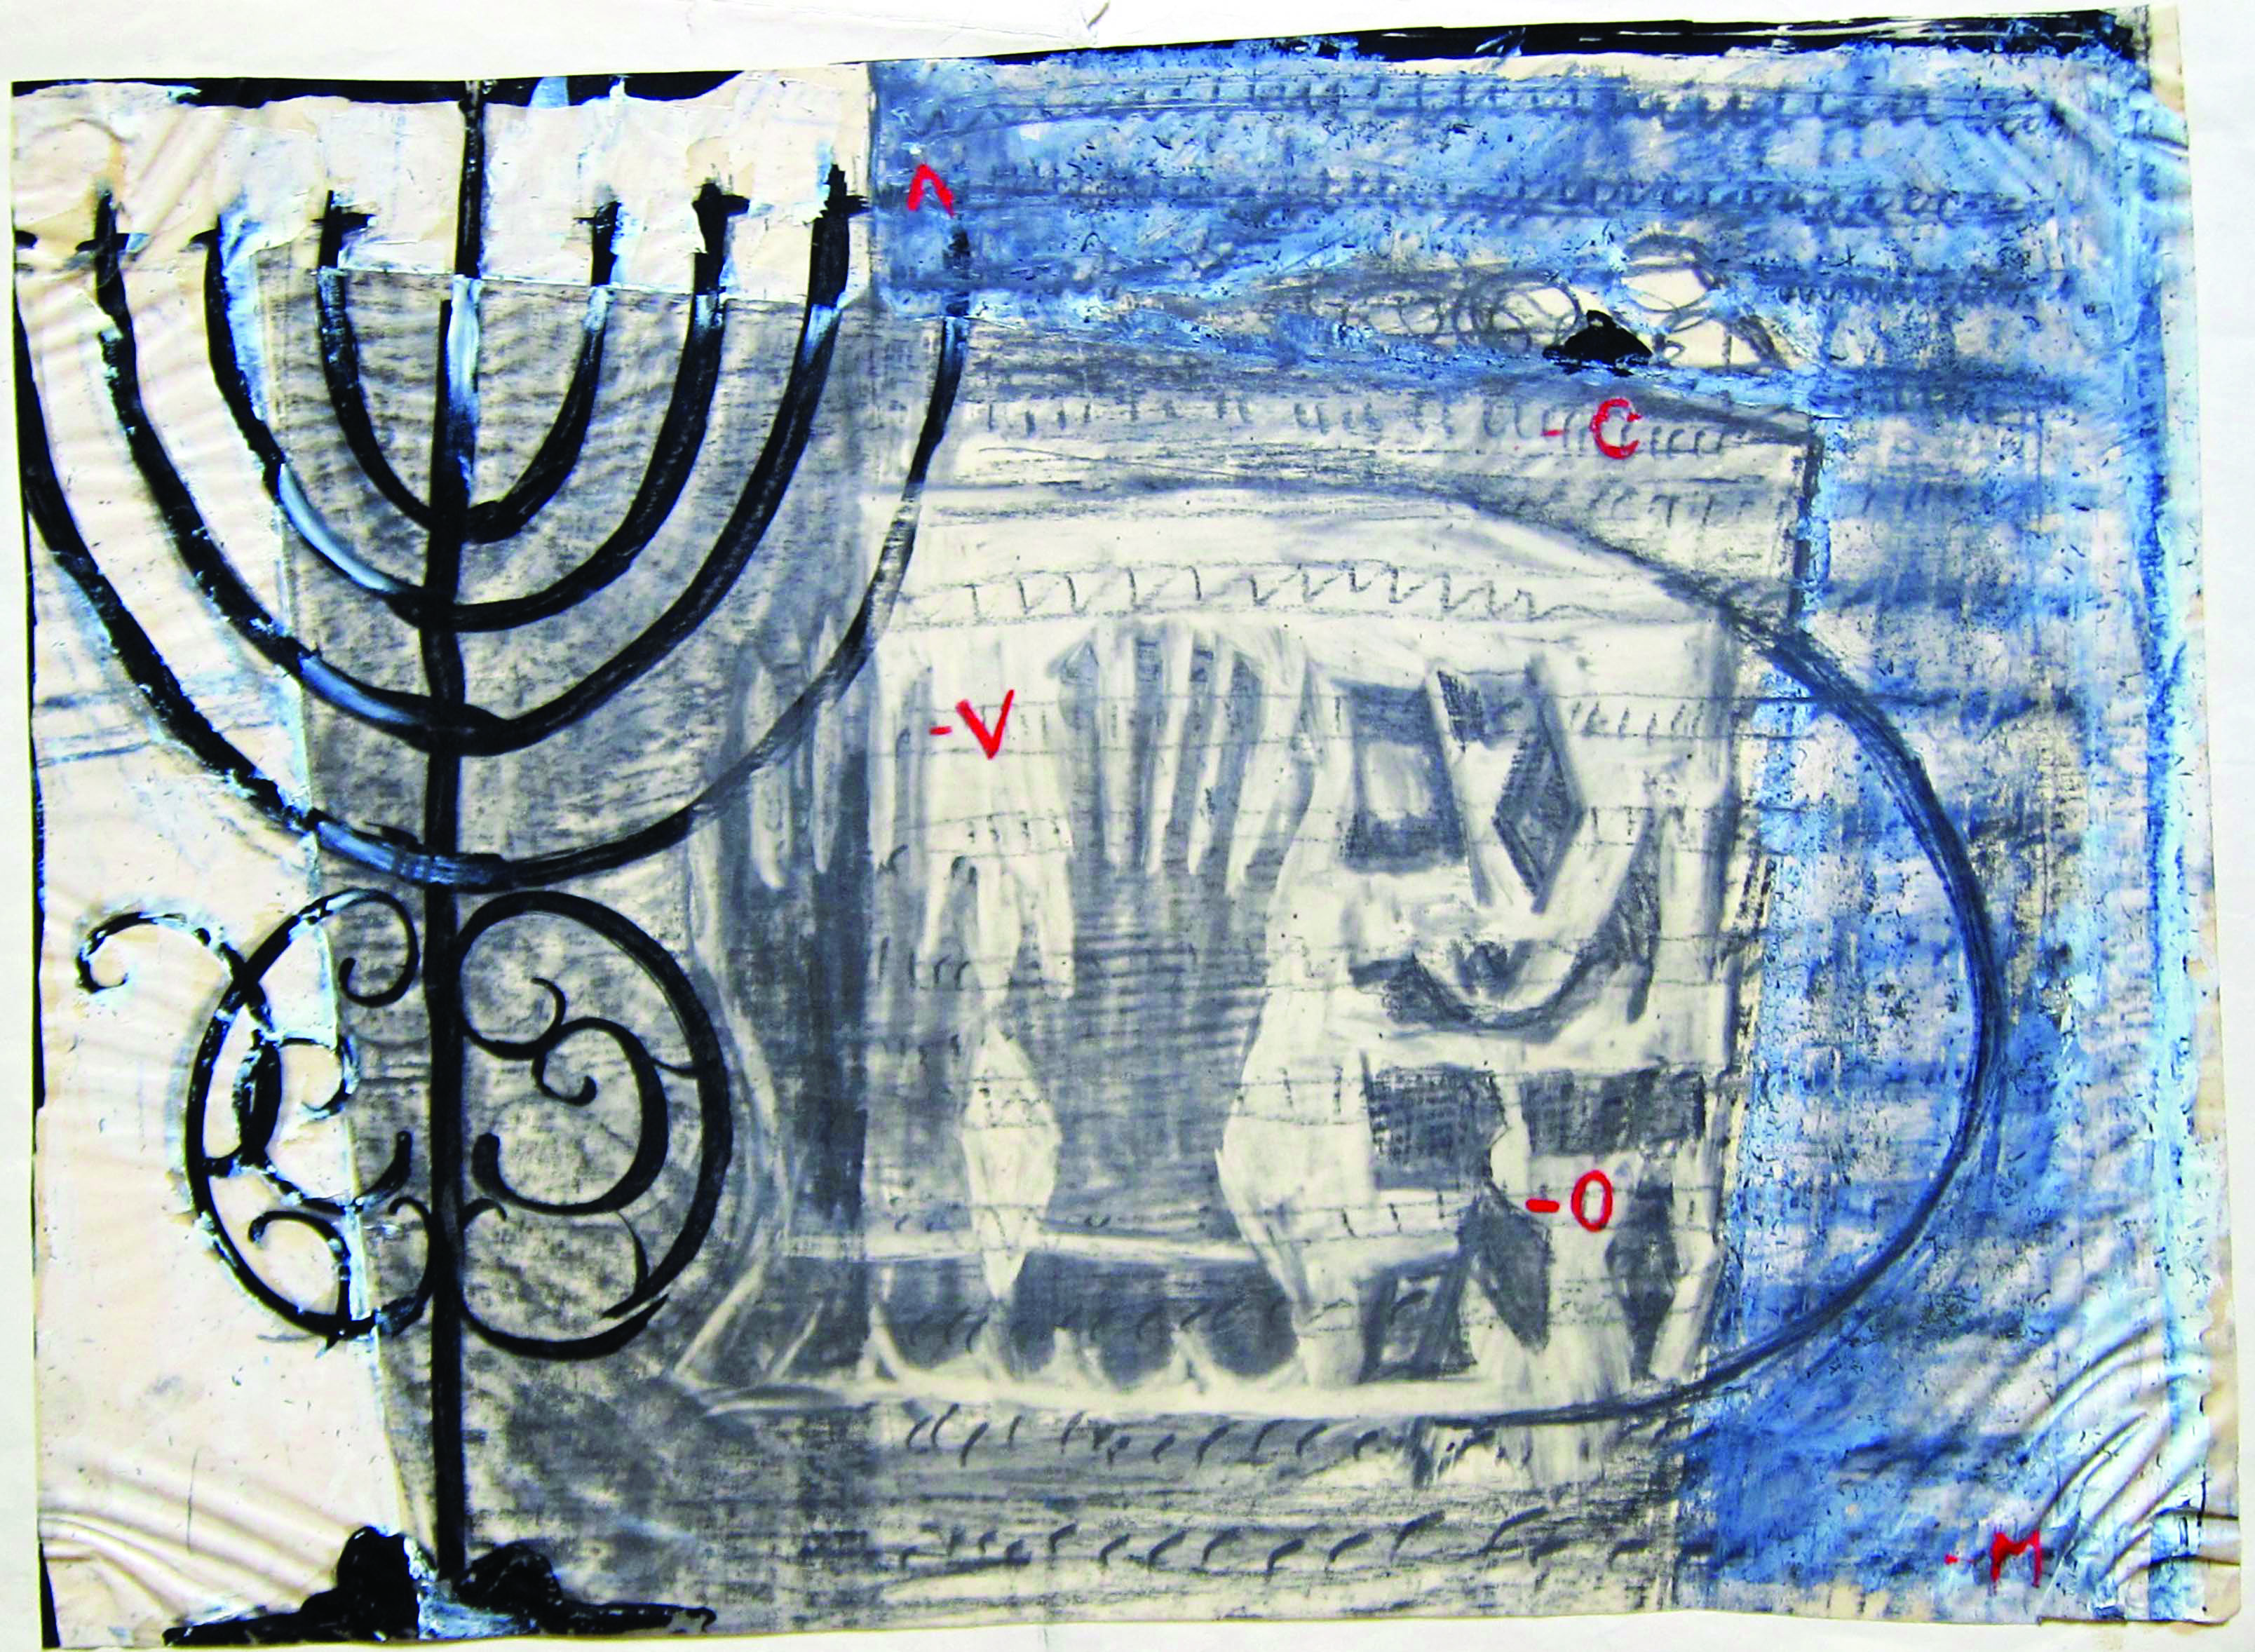 In memoriam, menorah, 1974, mixed media, 36X49 cm